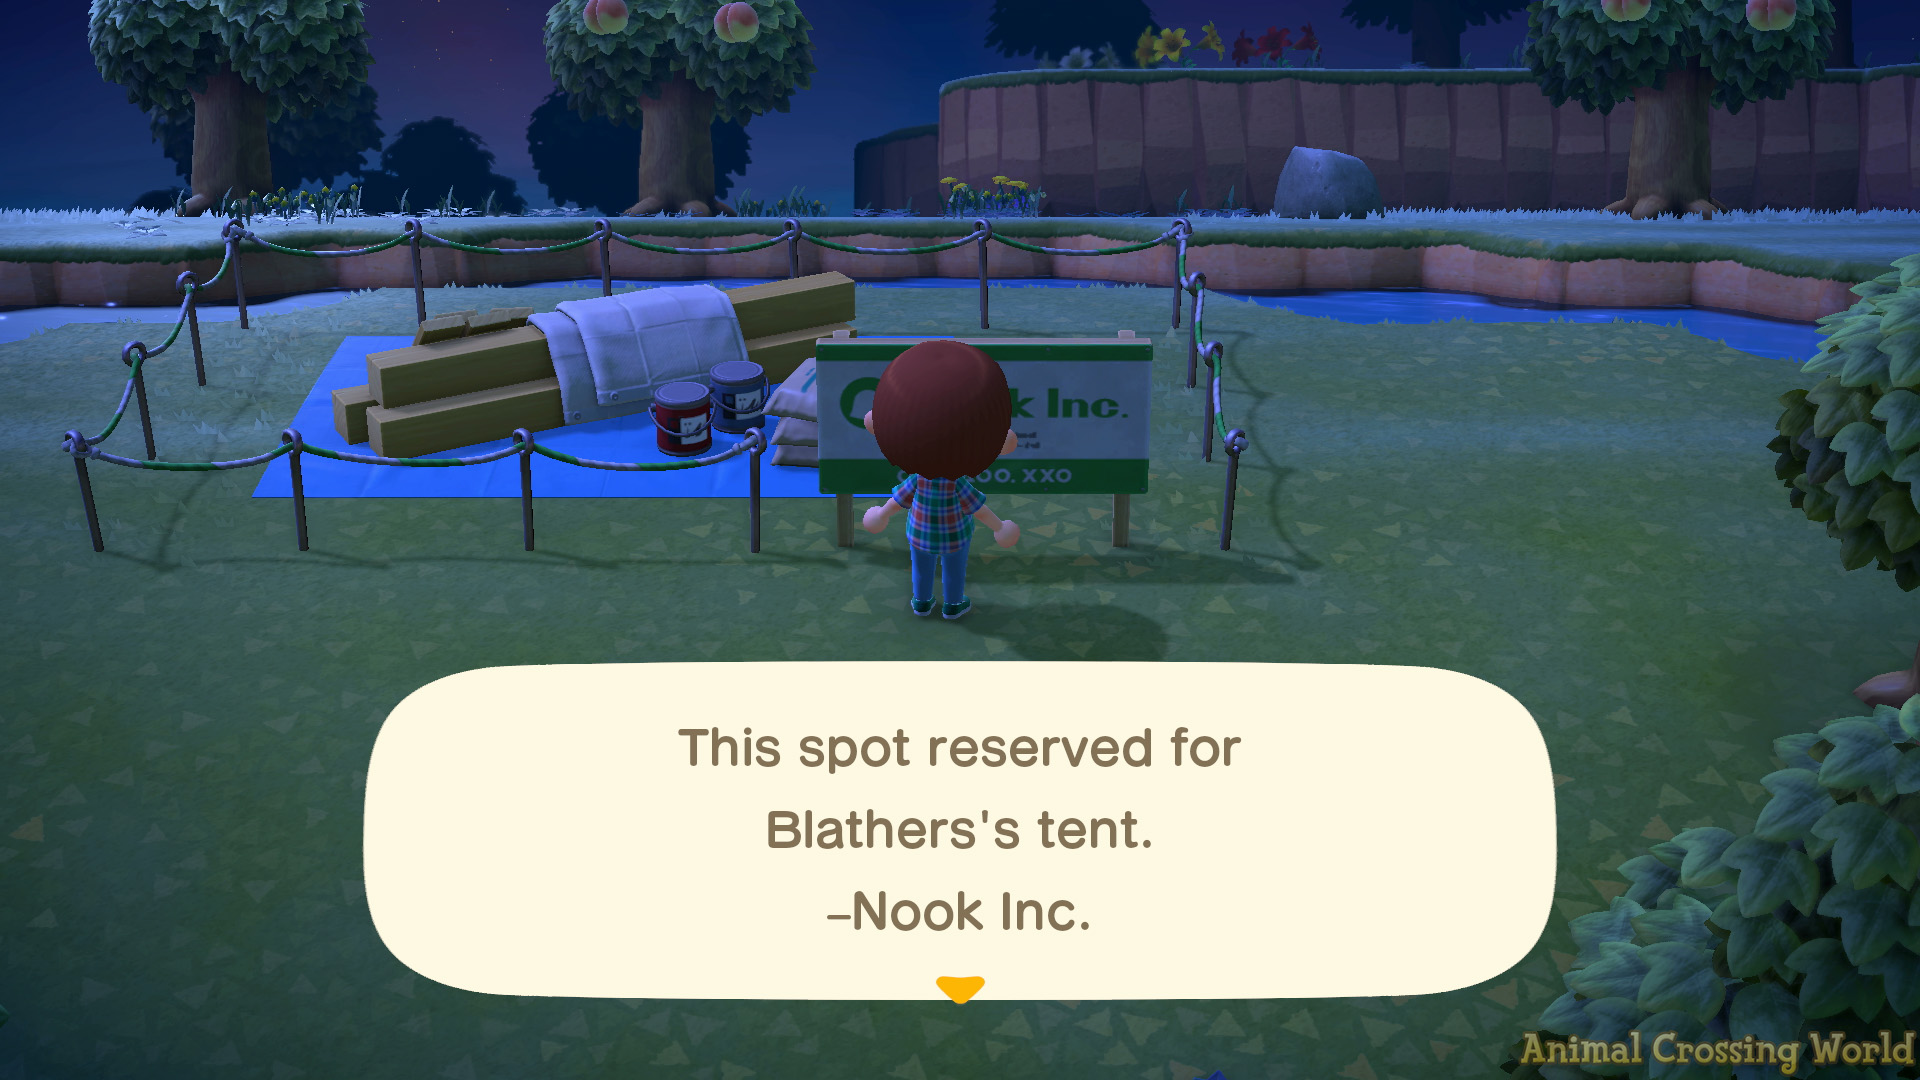 How To Get Vaulting Pole Ladders To Cross Rivers Climb Cliffs In Animal Crossing New Horizons